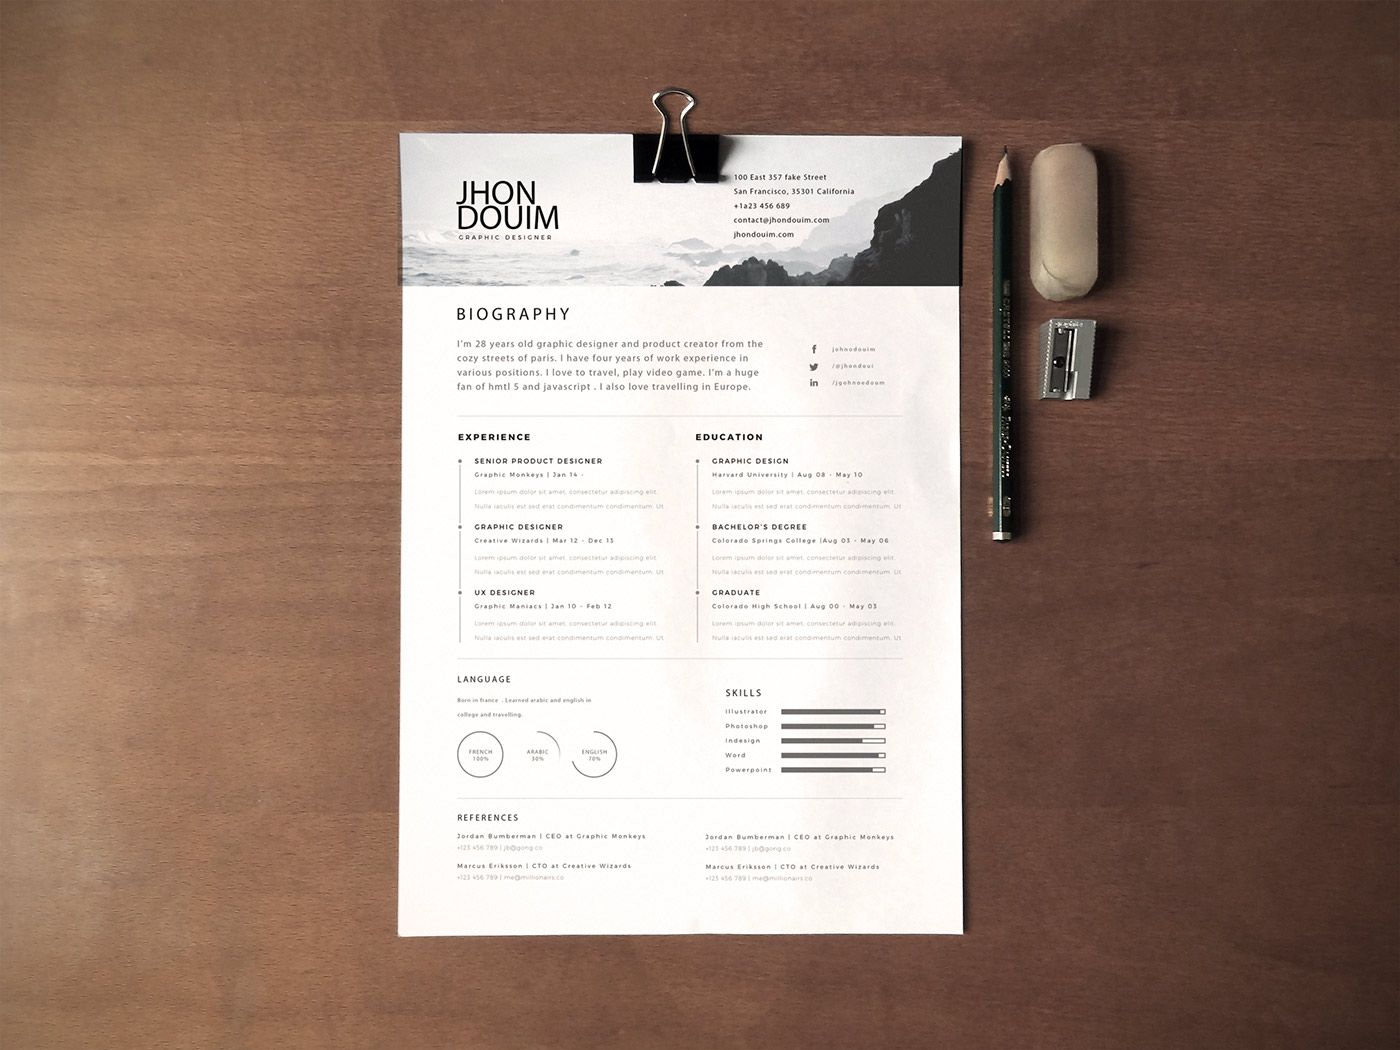 making resume format%0A Clean Realistic Resume   CV Template PSD I like the rankings for languages